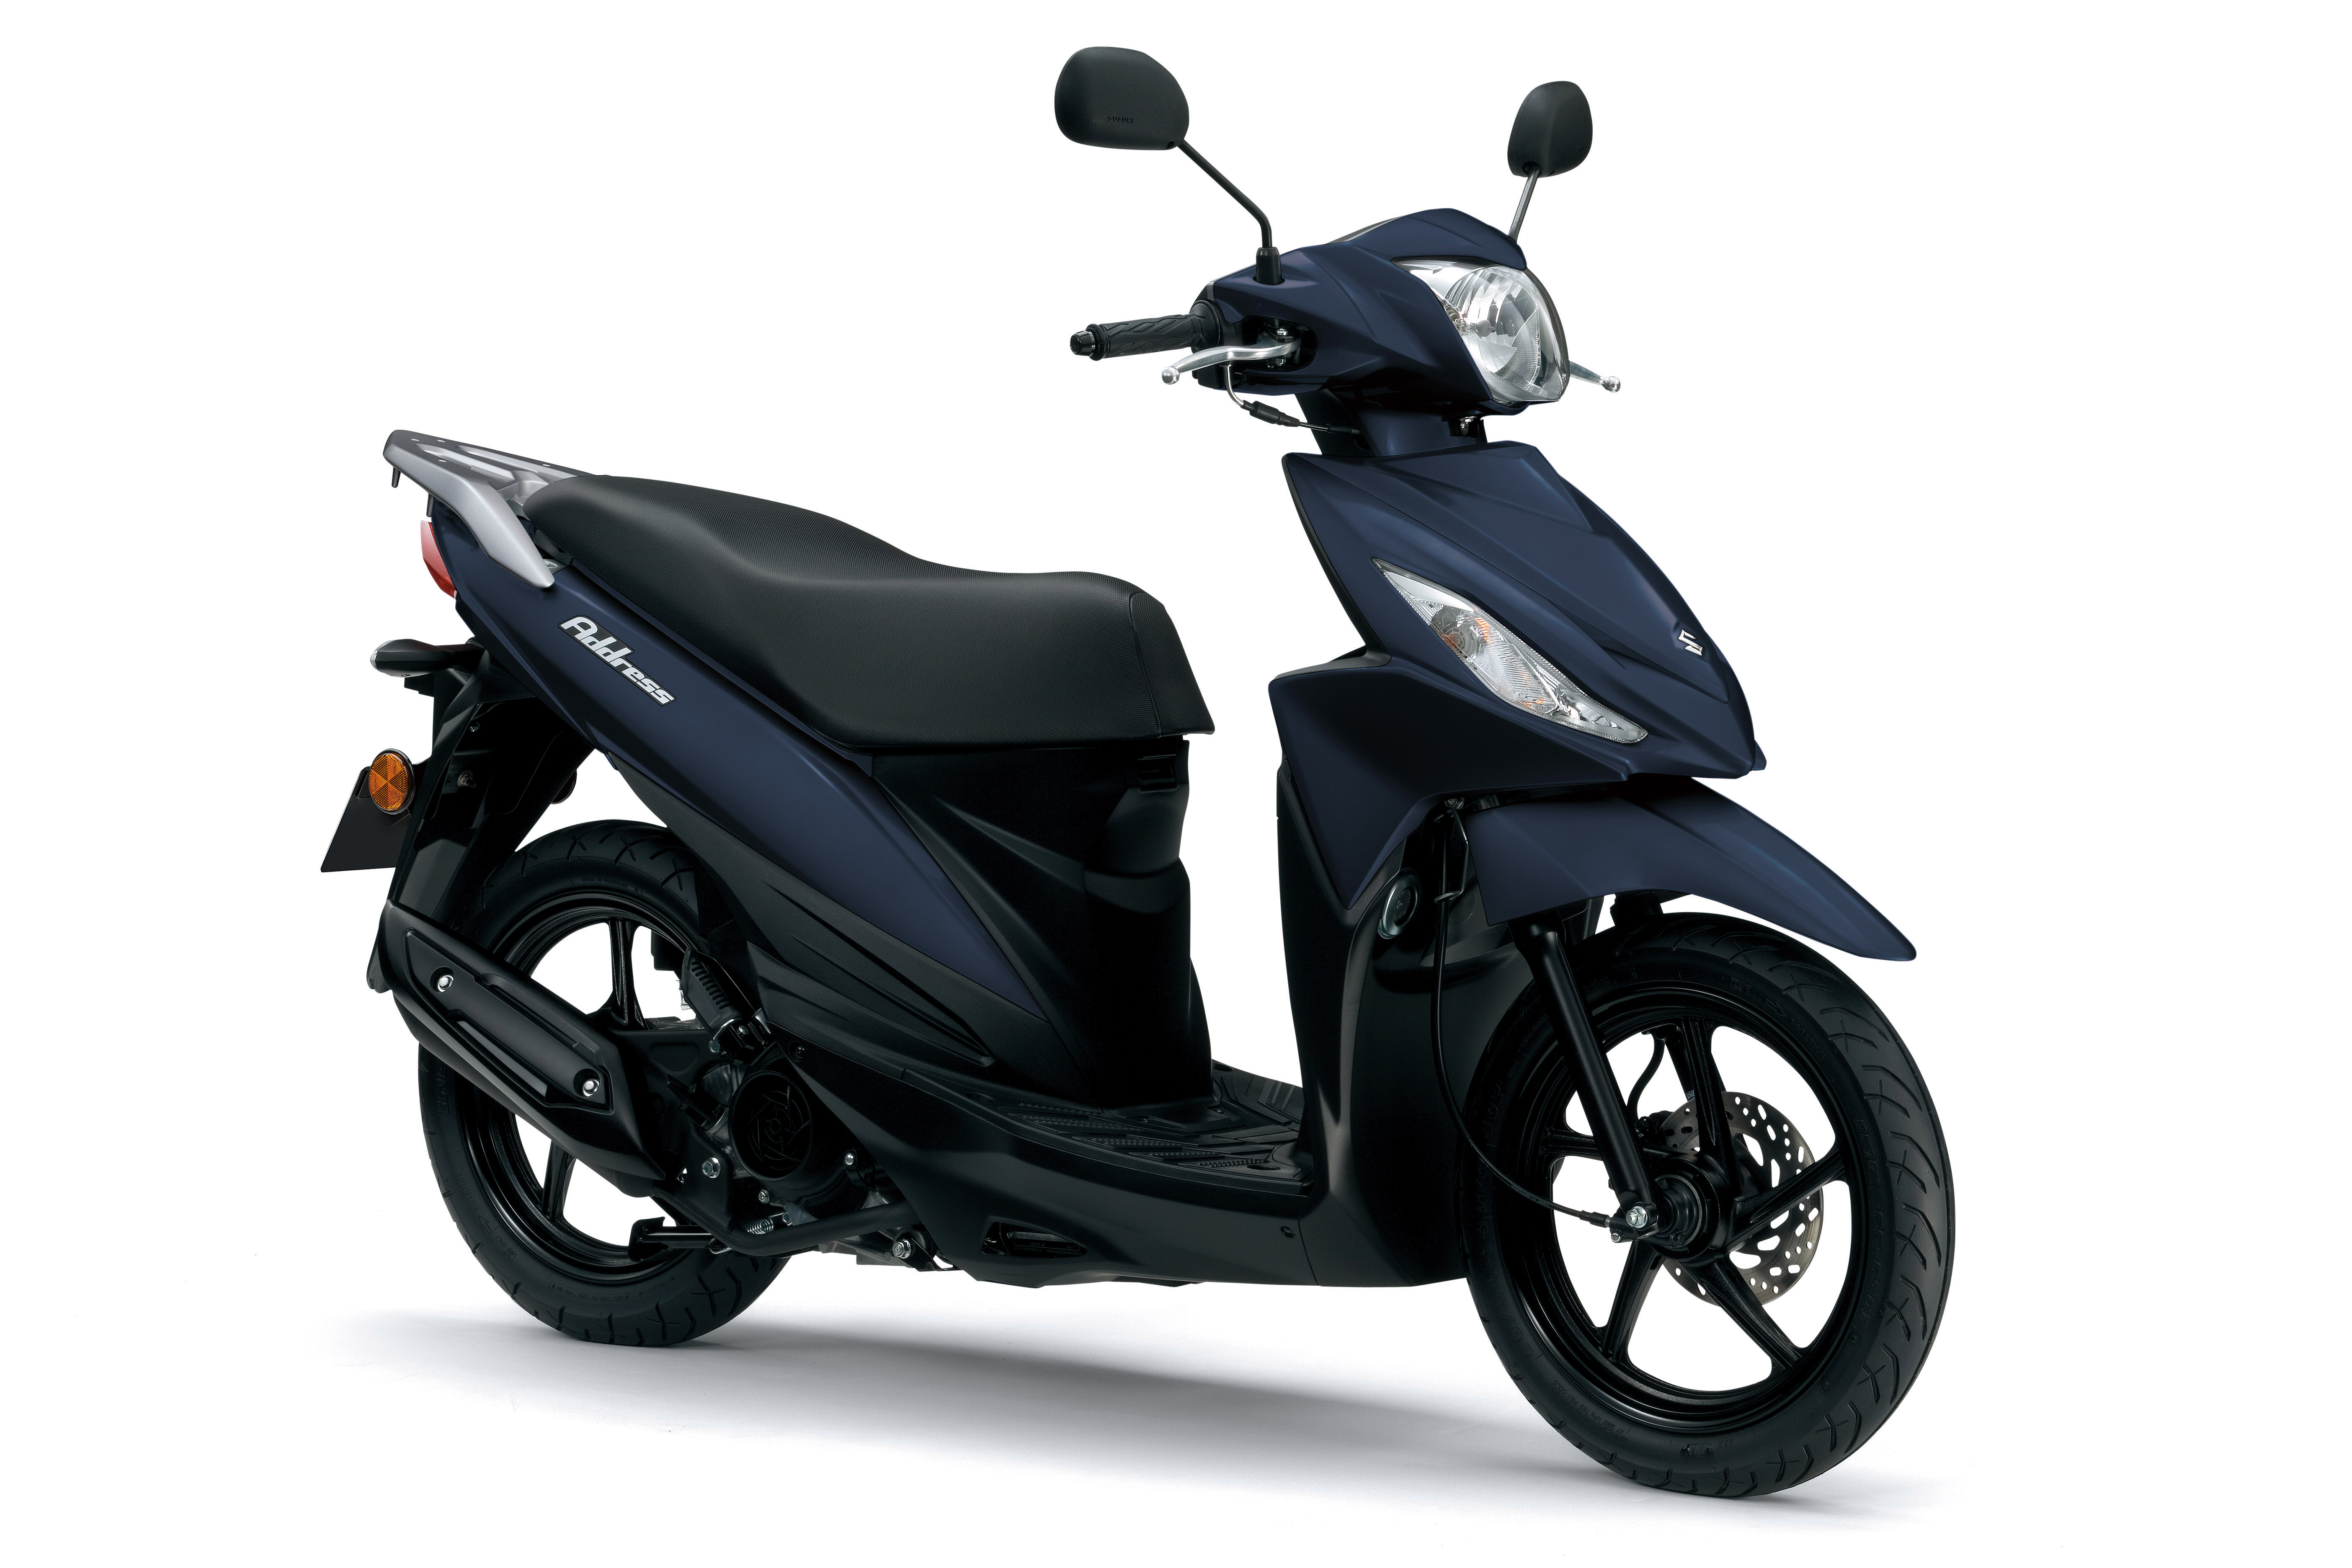 Suzuki also makes scooters and motorbikes, which are selling like hotcakes in the present climate